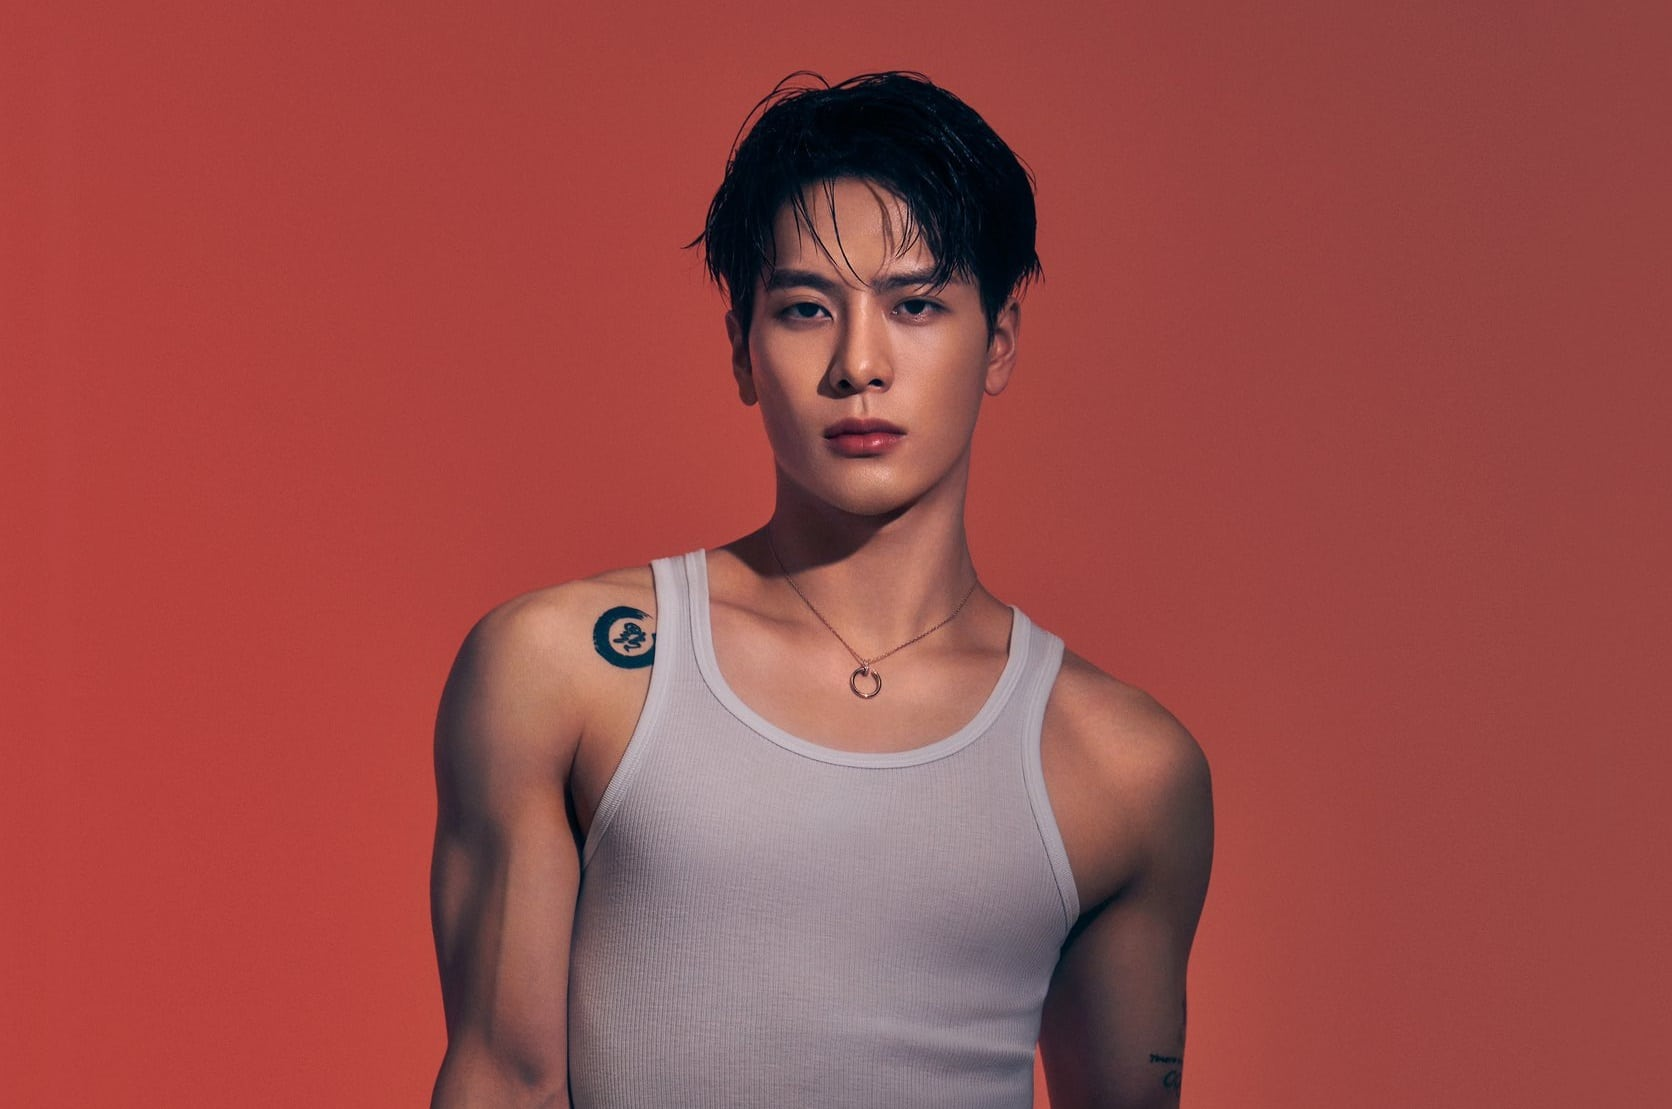 Jackson GOT7 Ungkap Teaser MV 'Should've Let Go' Jelang Comeback Solo